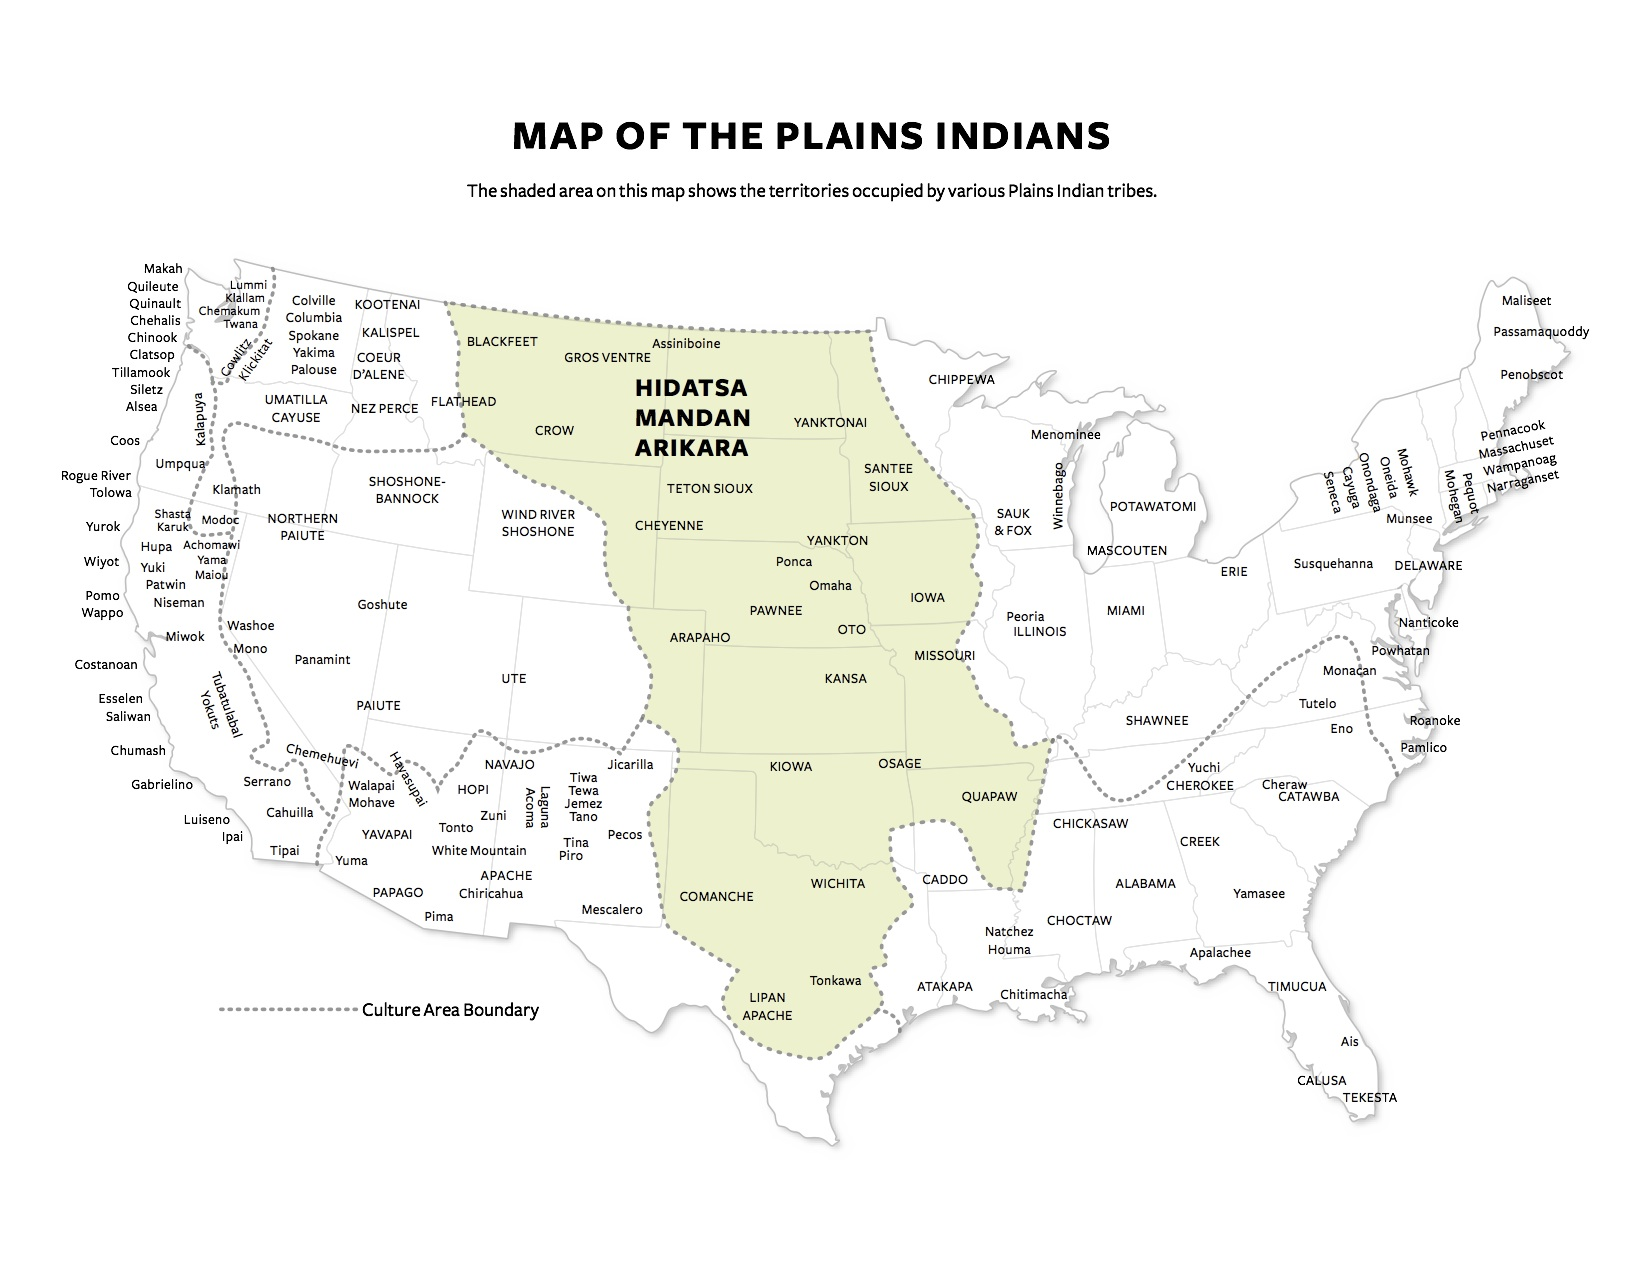 12 manifest destiny the american yawp map of the plains indians undated smithsonian institute http buycottarizona